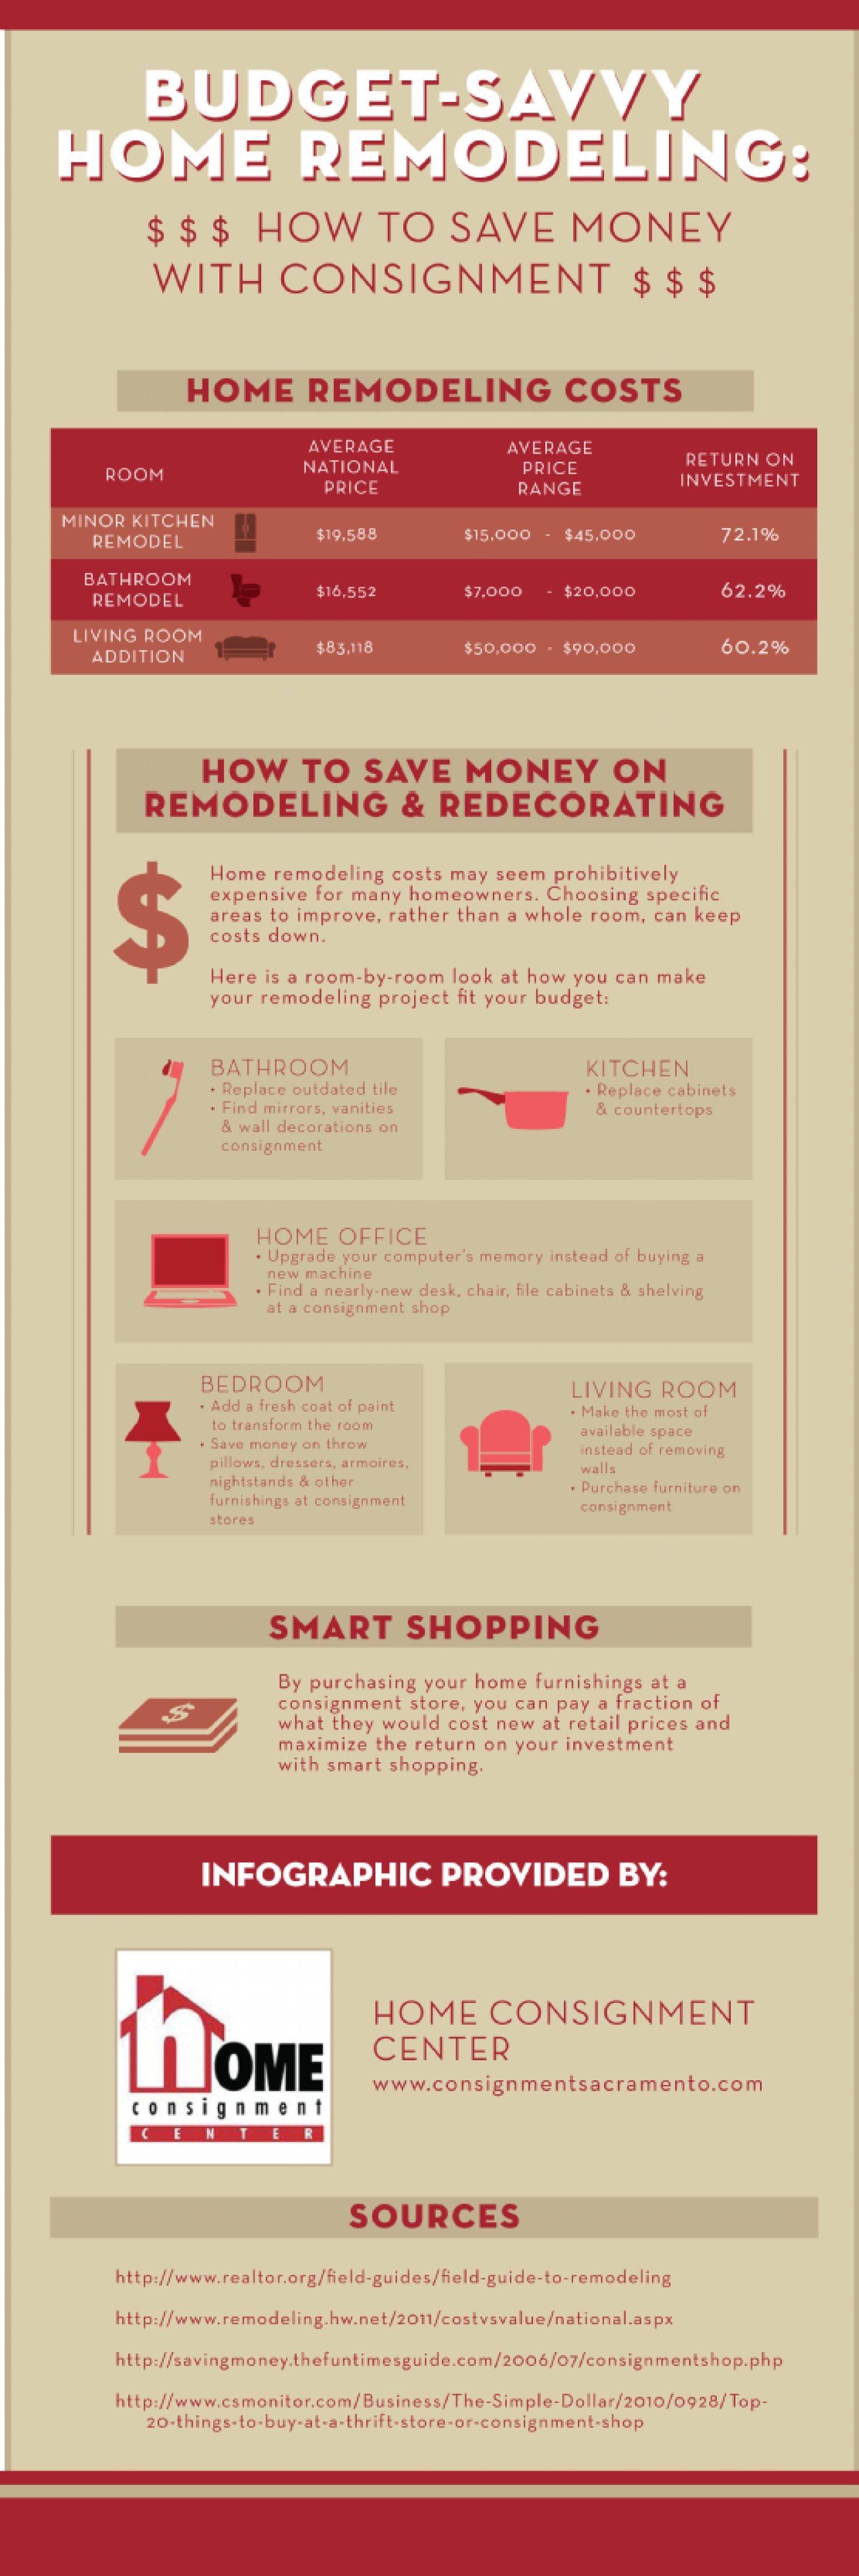 How to Save on Remodeling with Consignment  Infographic